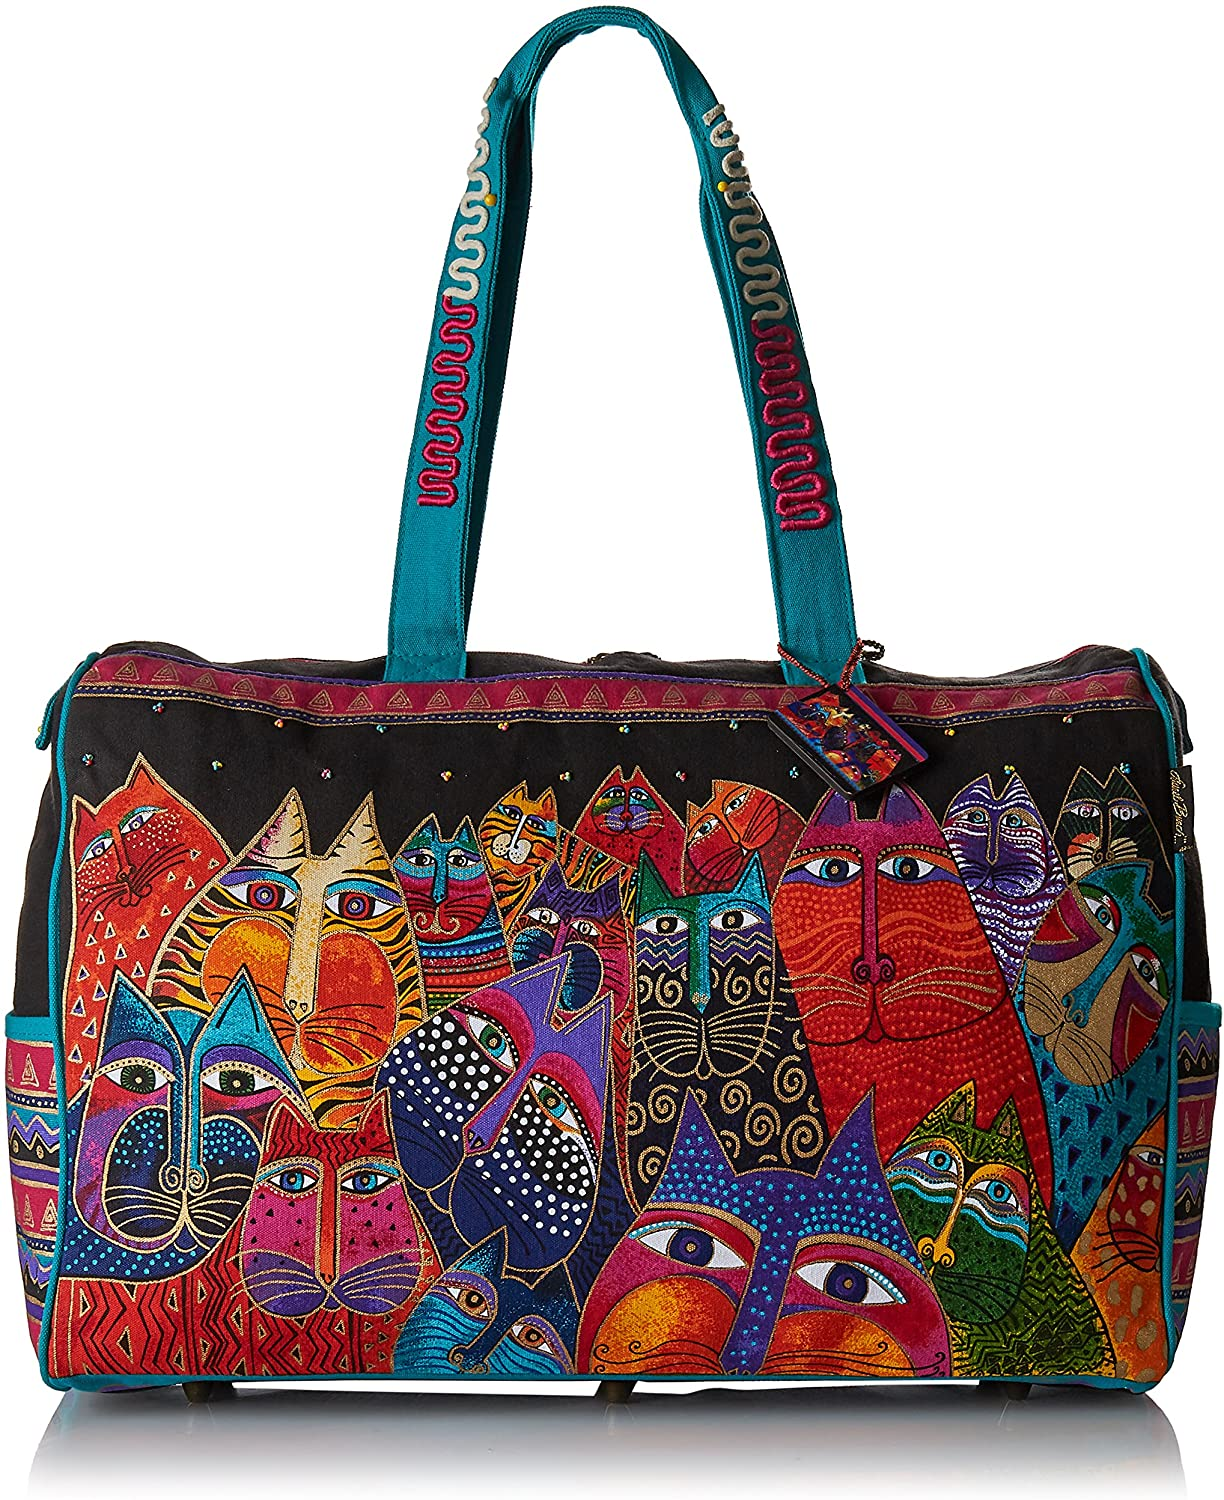 Laurel Burch Travel Bag Zipper Top 21-Inch by 8-Inch by 16-Inch, Fantasticats